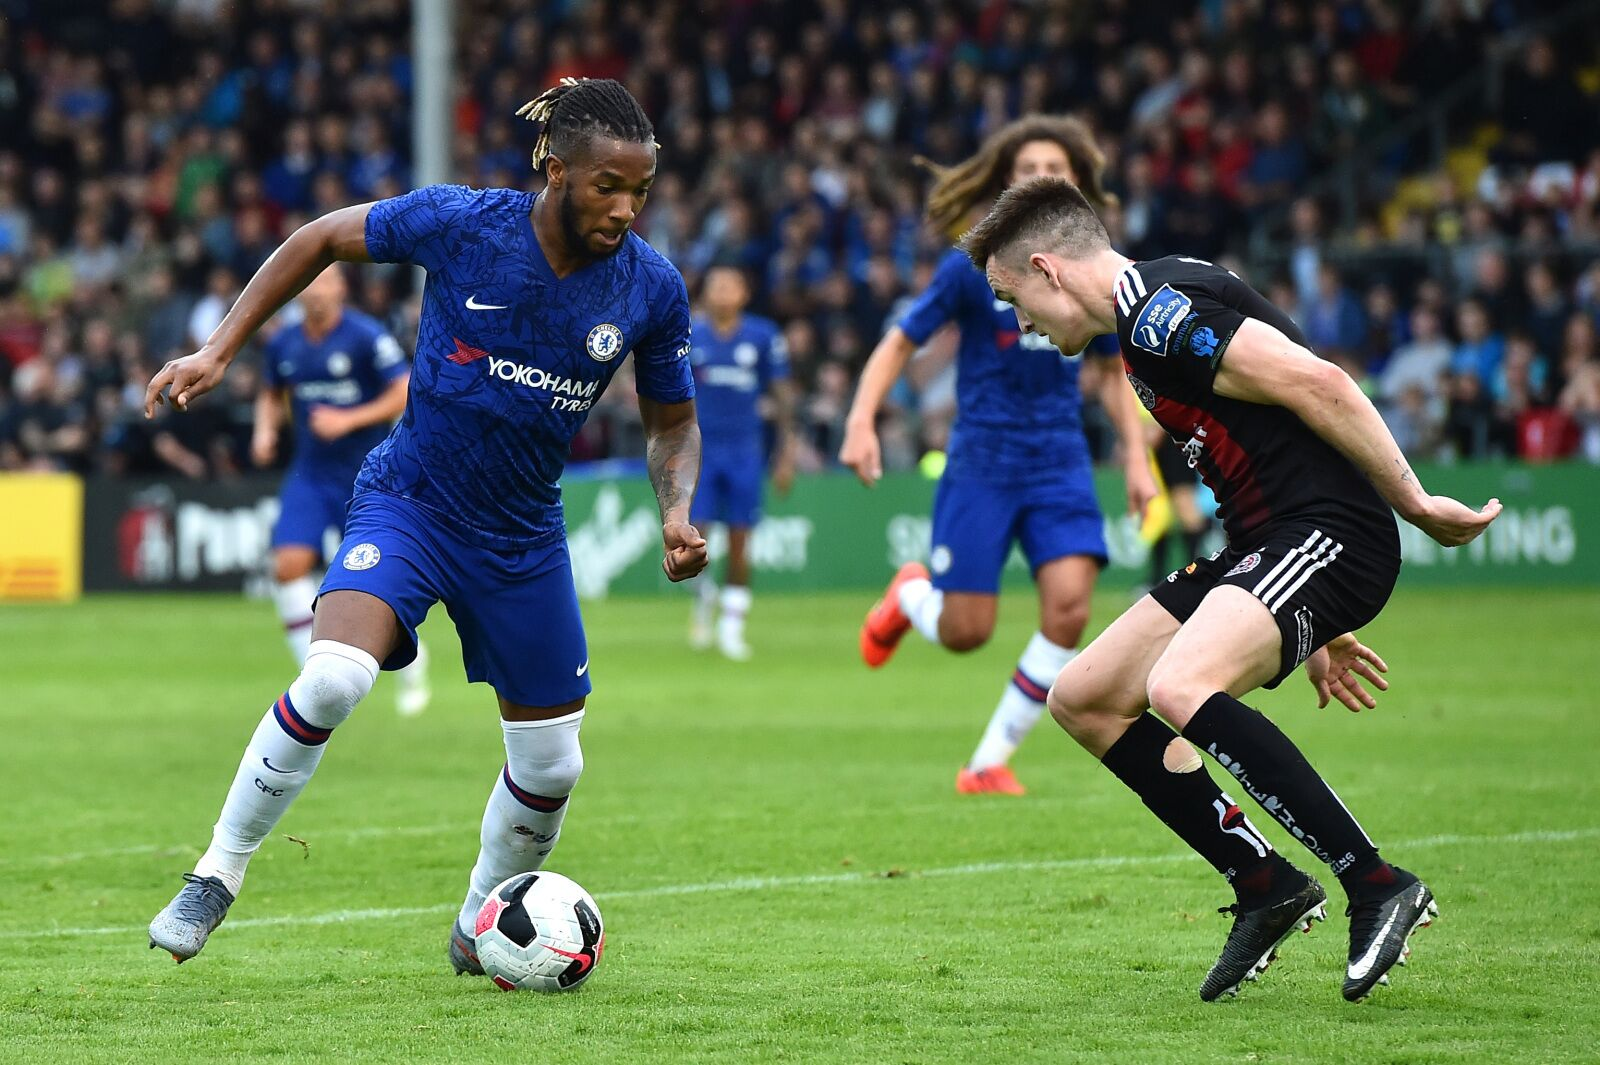 Chelsea: Kasey Palmer's options open up as he remains for preseason